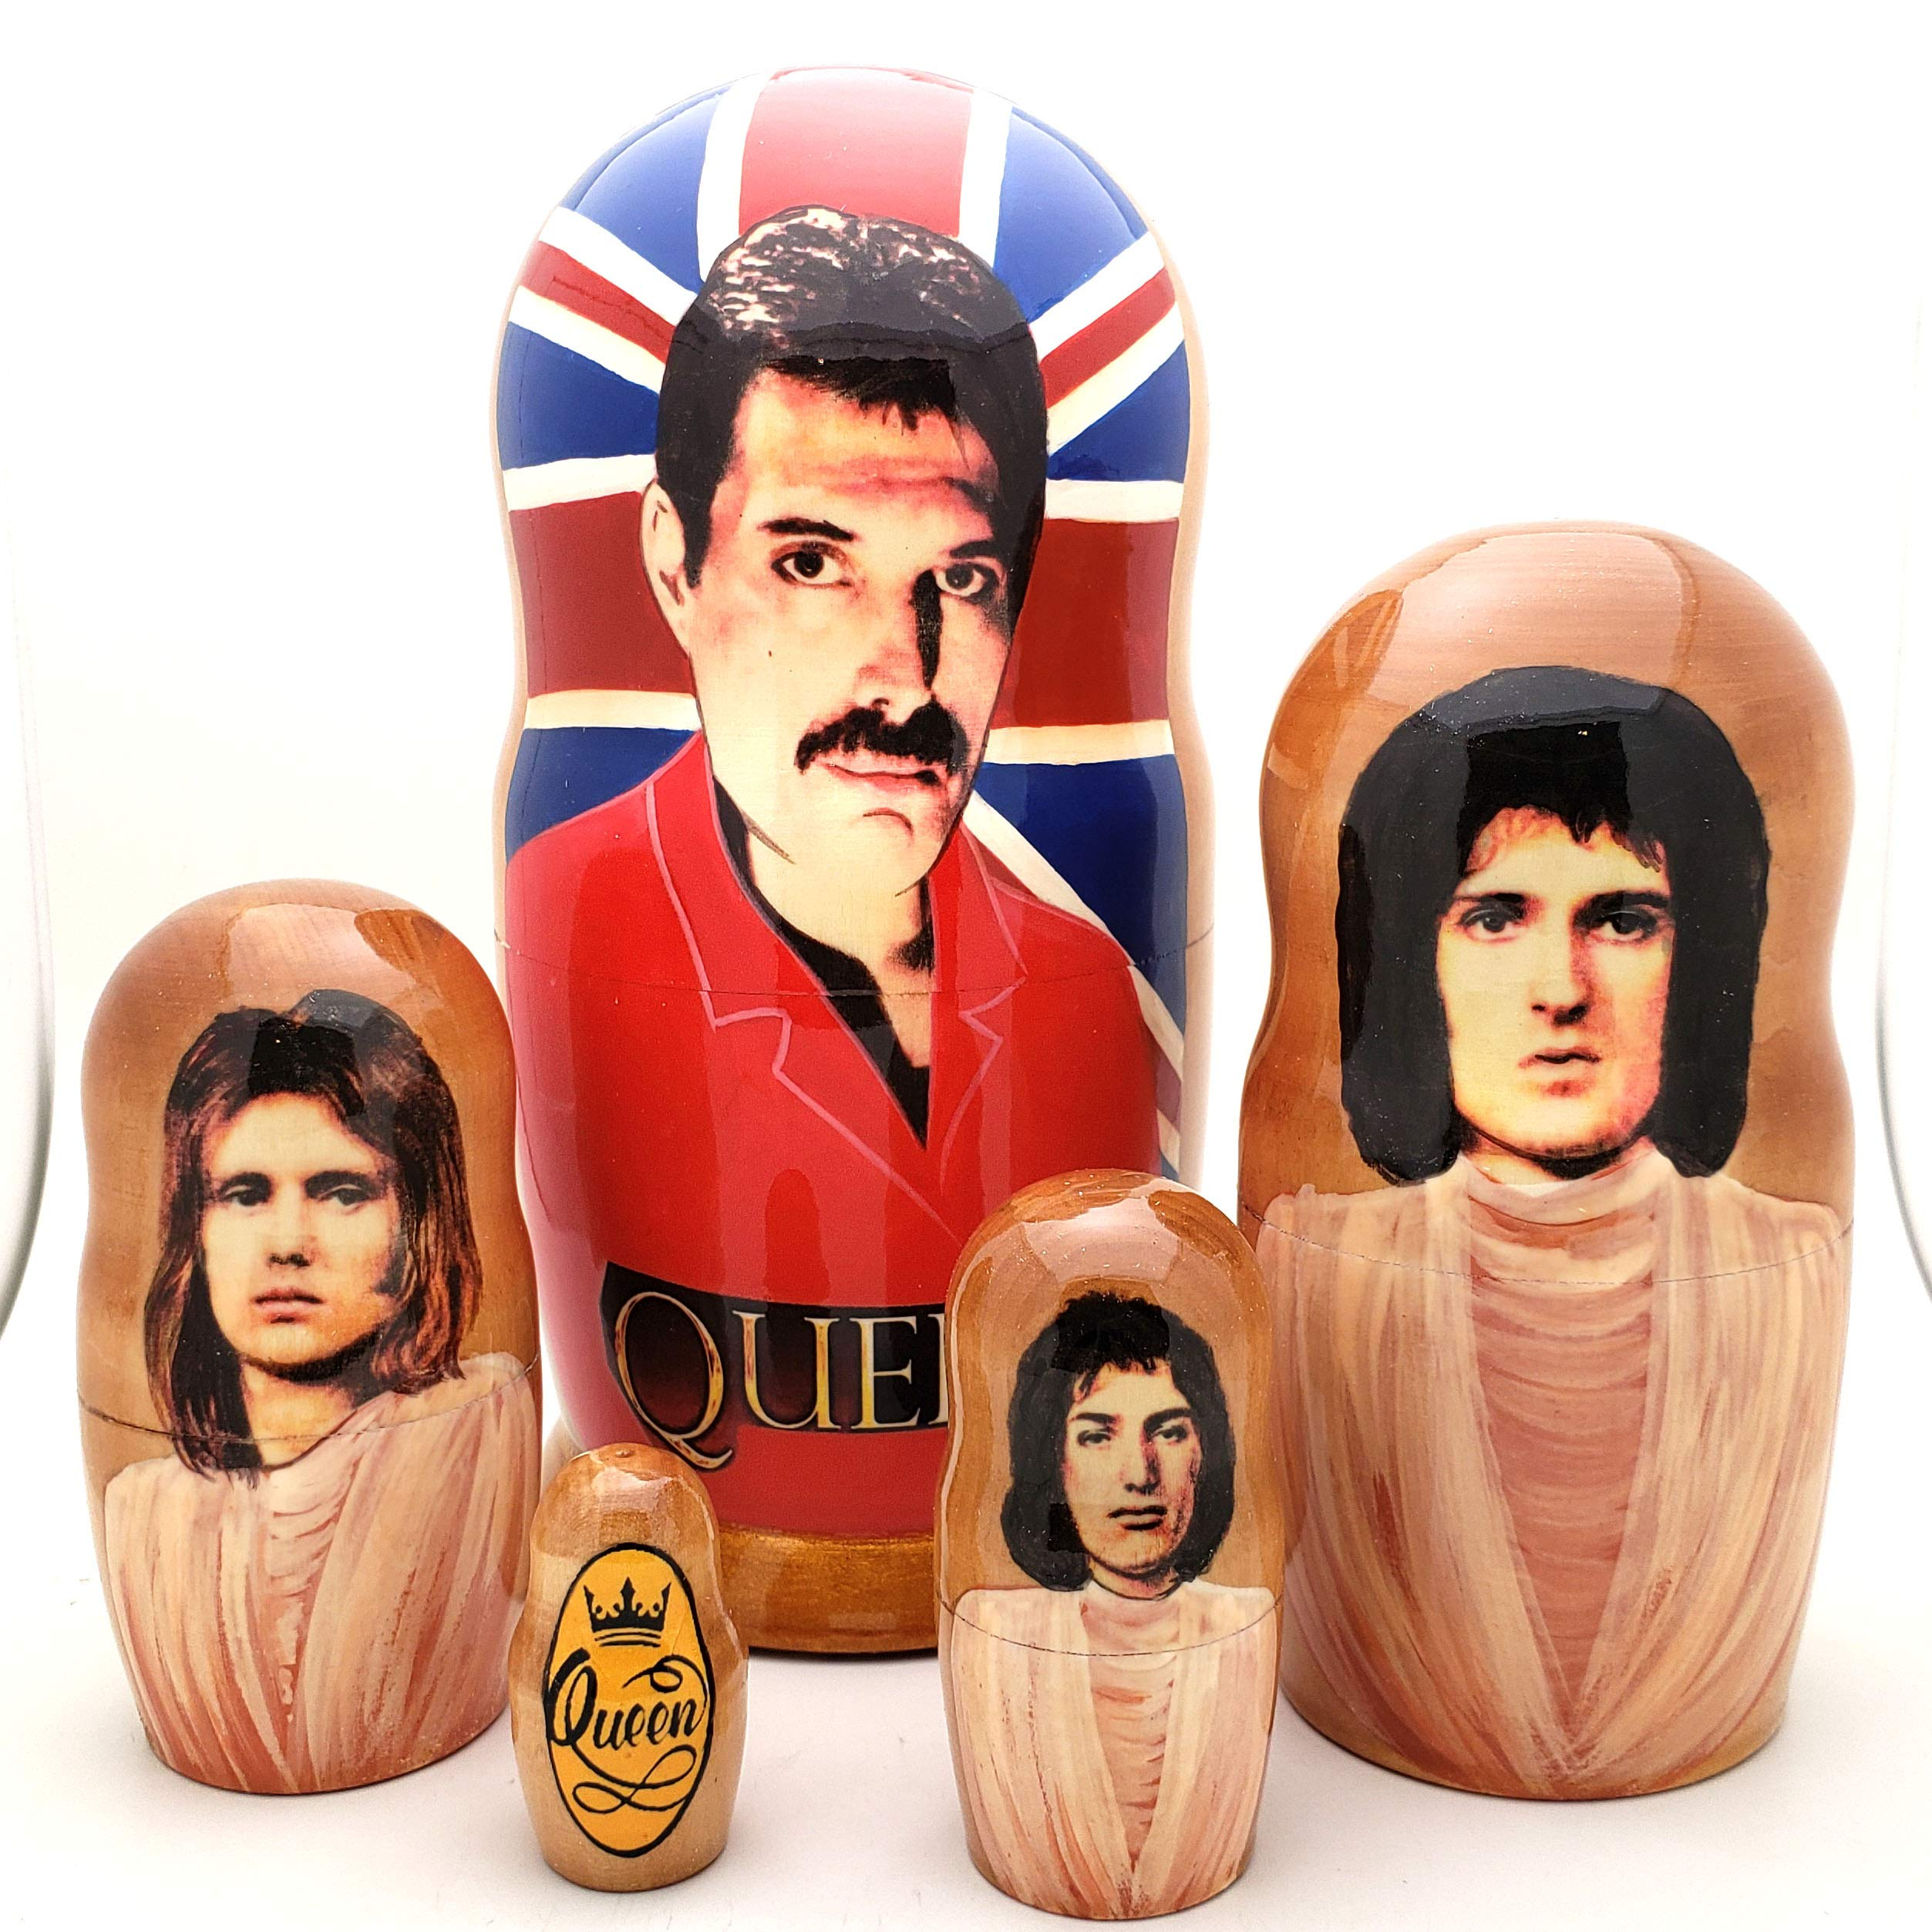 Queen Band Russian Nesting Dolls 5 Piece Doll Set 7'' Tall / Freddie Mercury, Brian May, Roger Taylor, John Deacon